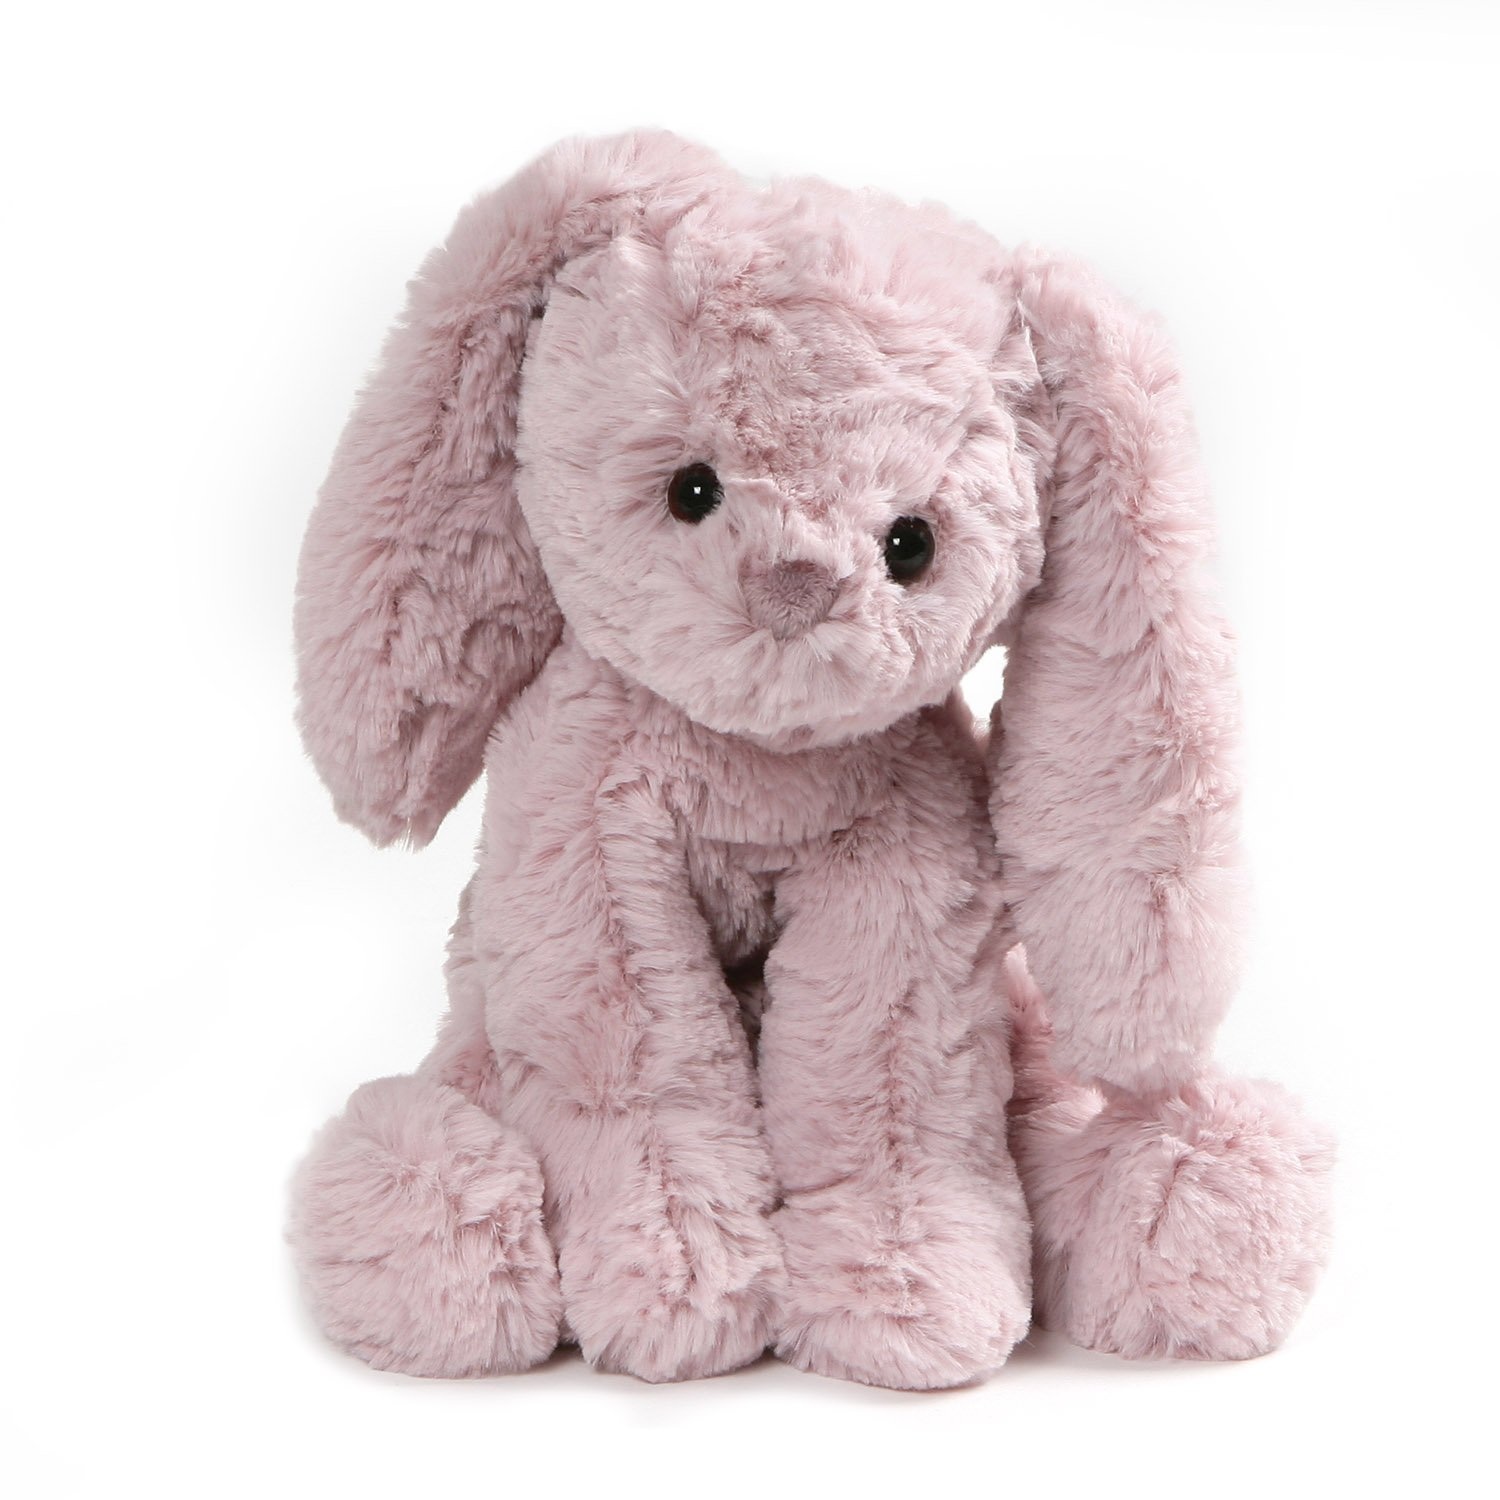 GUND Cozys Collection Bunny Rabbit Stuffed Animal Plush, 10'' by GUND